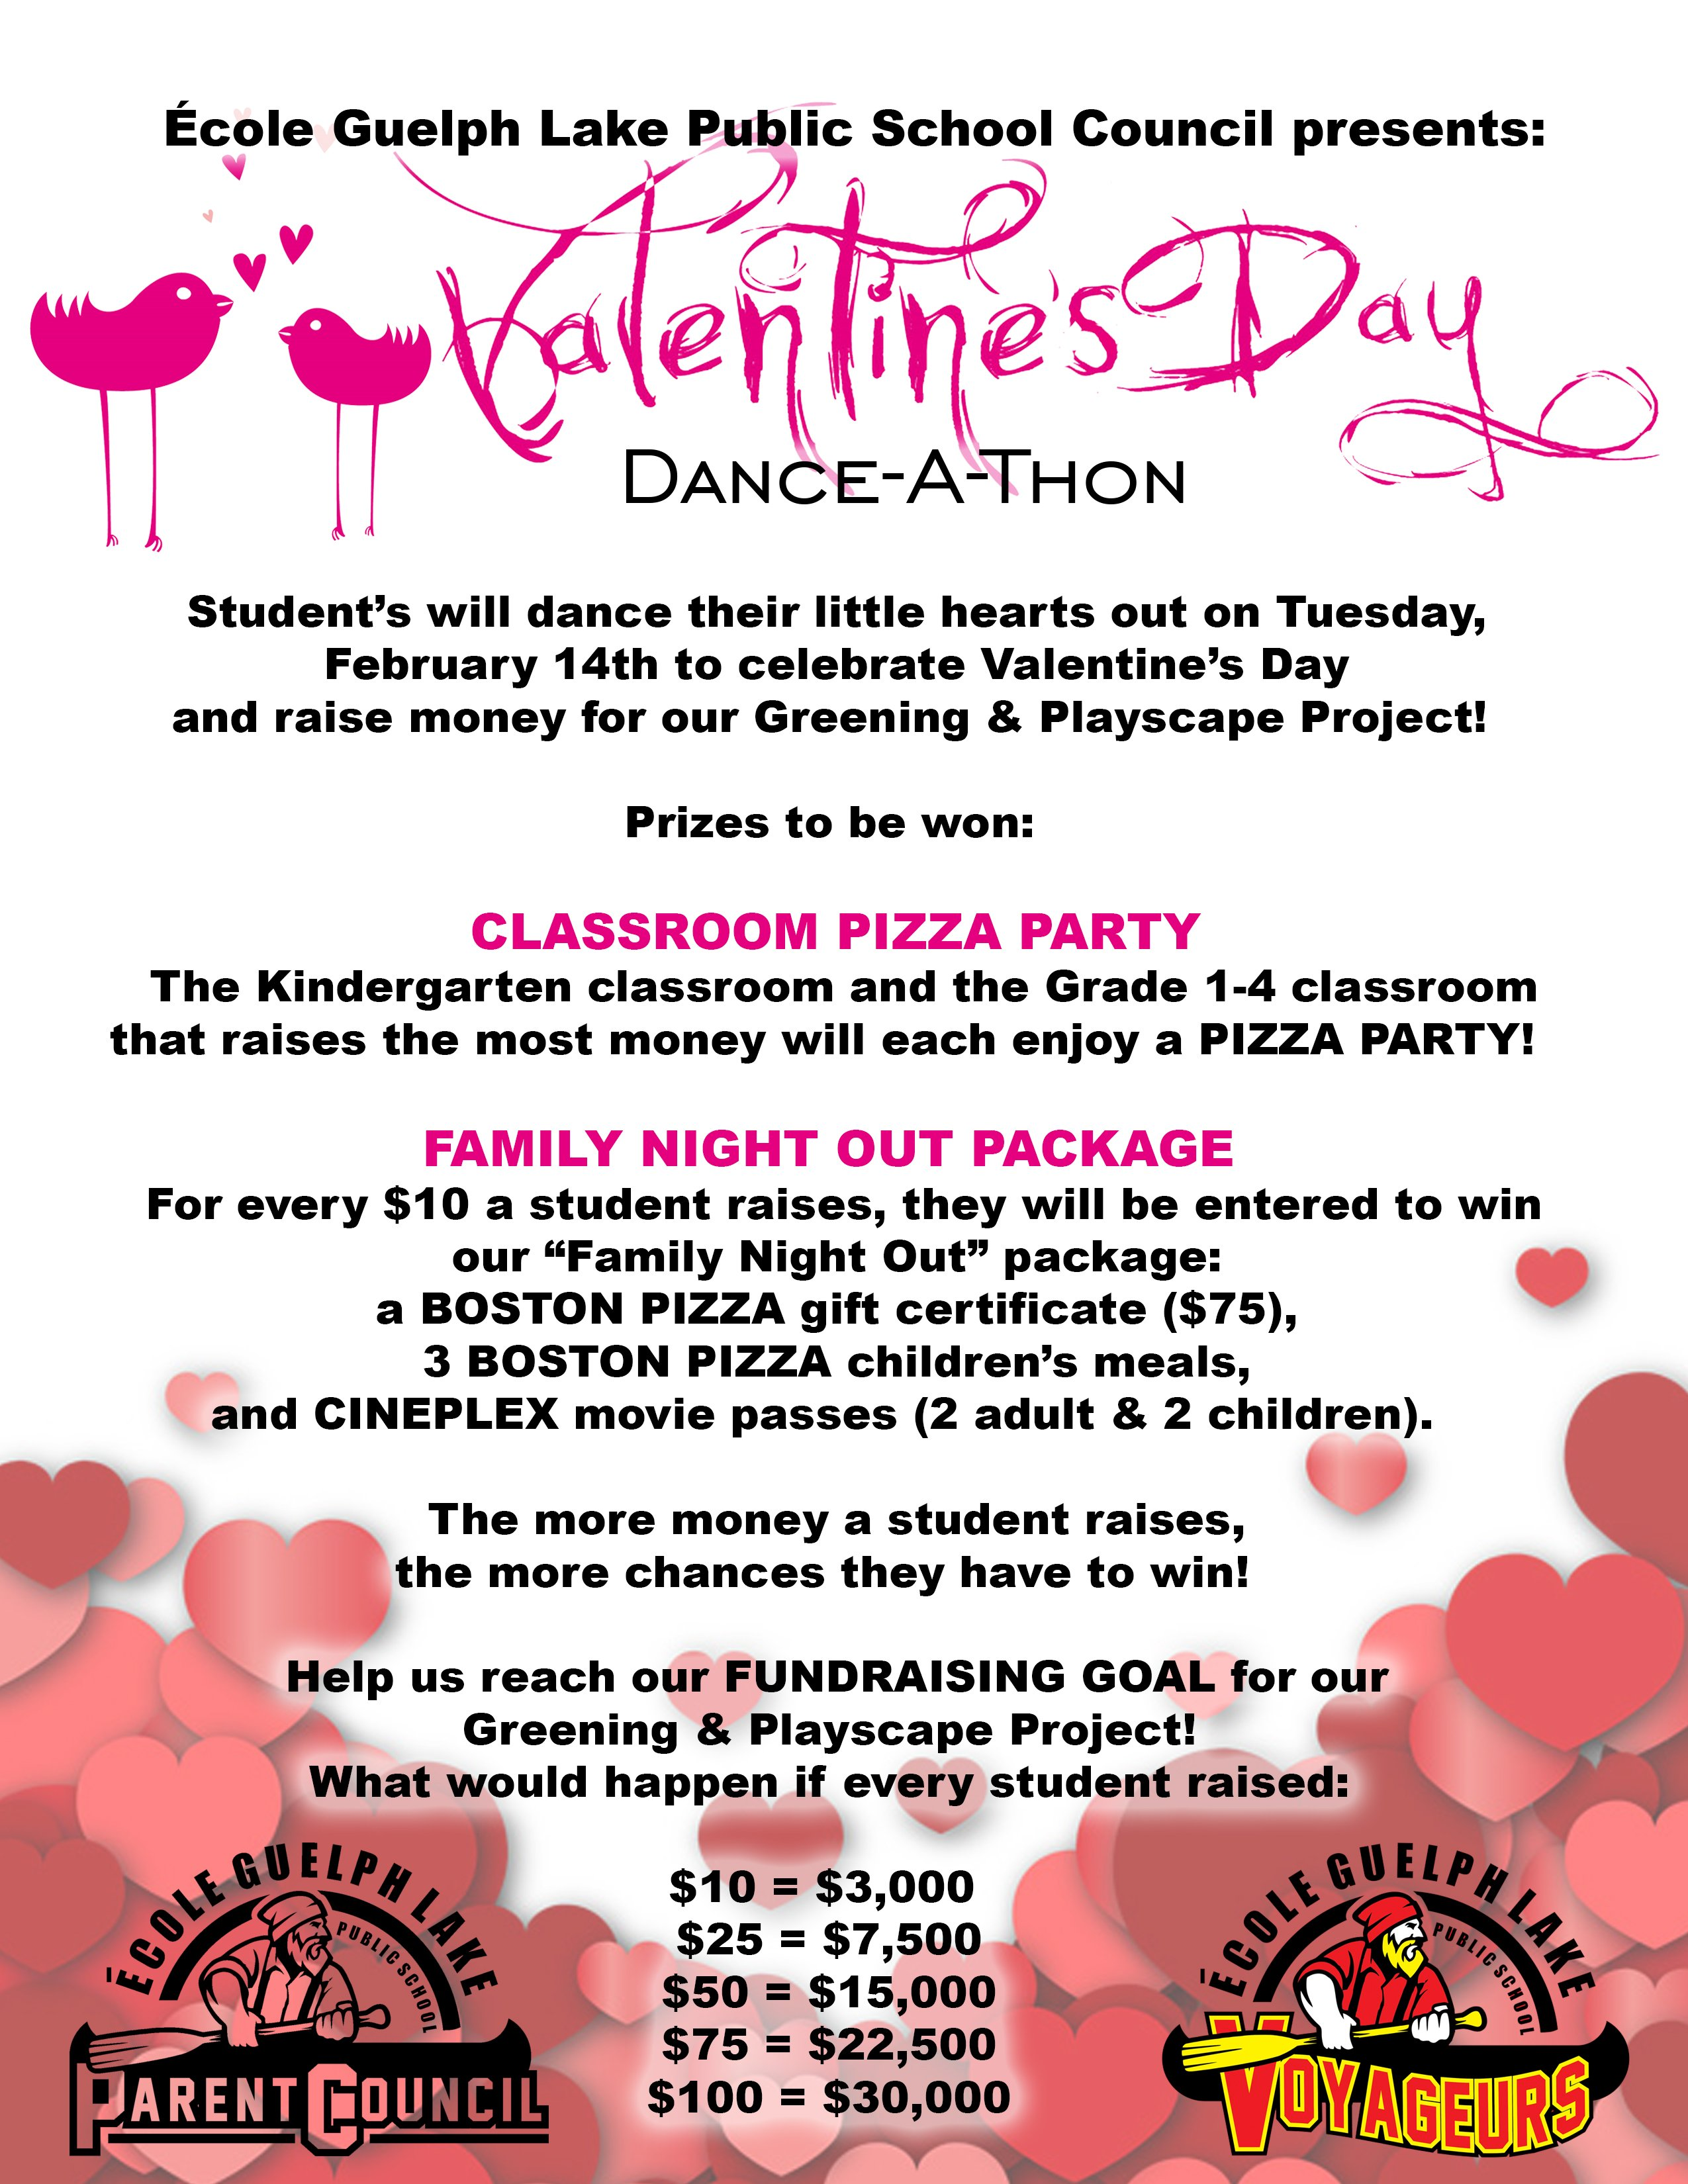 Ecole Guelph Lake Valentine's Day Dance-A-Thon Flyer